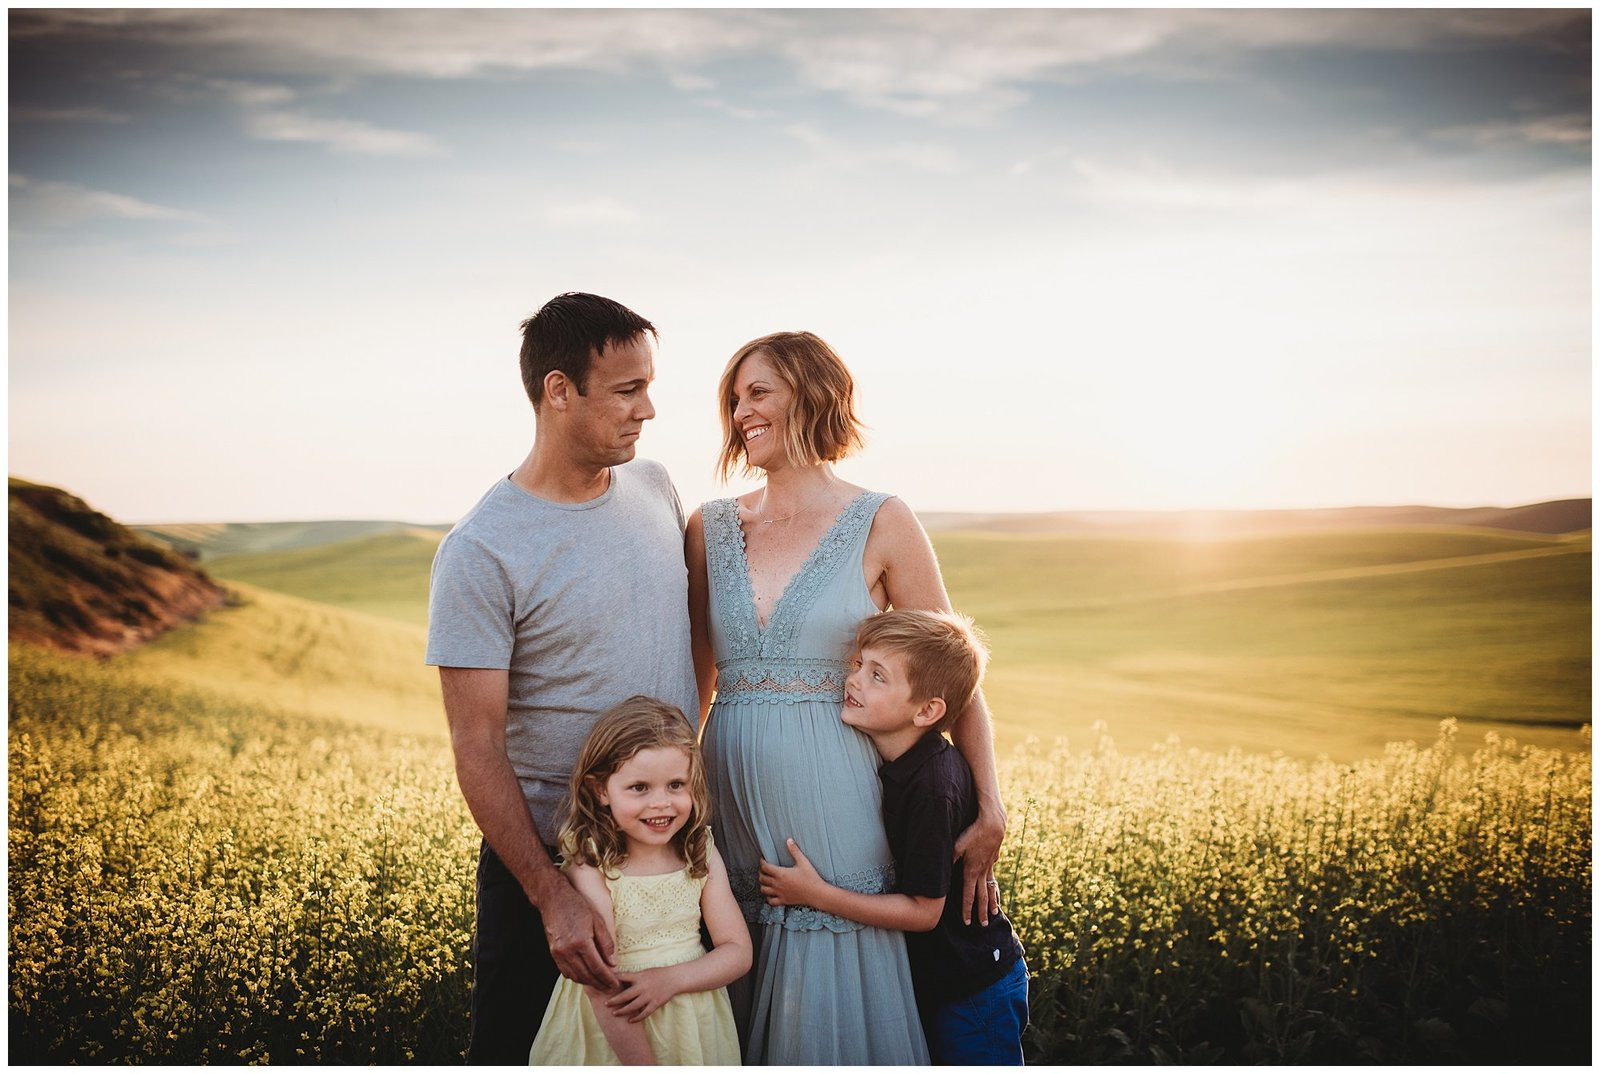 family photos at sunset in field of yellow flowers Emily Ann Photography Seattle Family Photographer